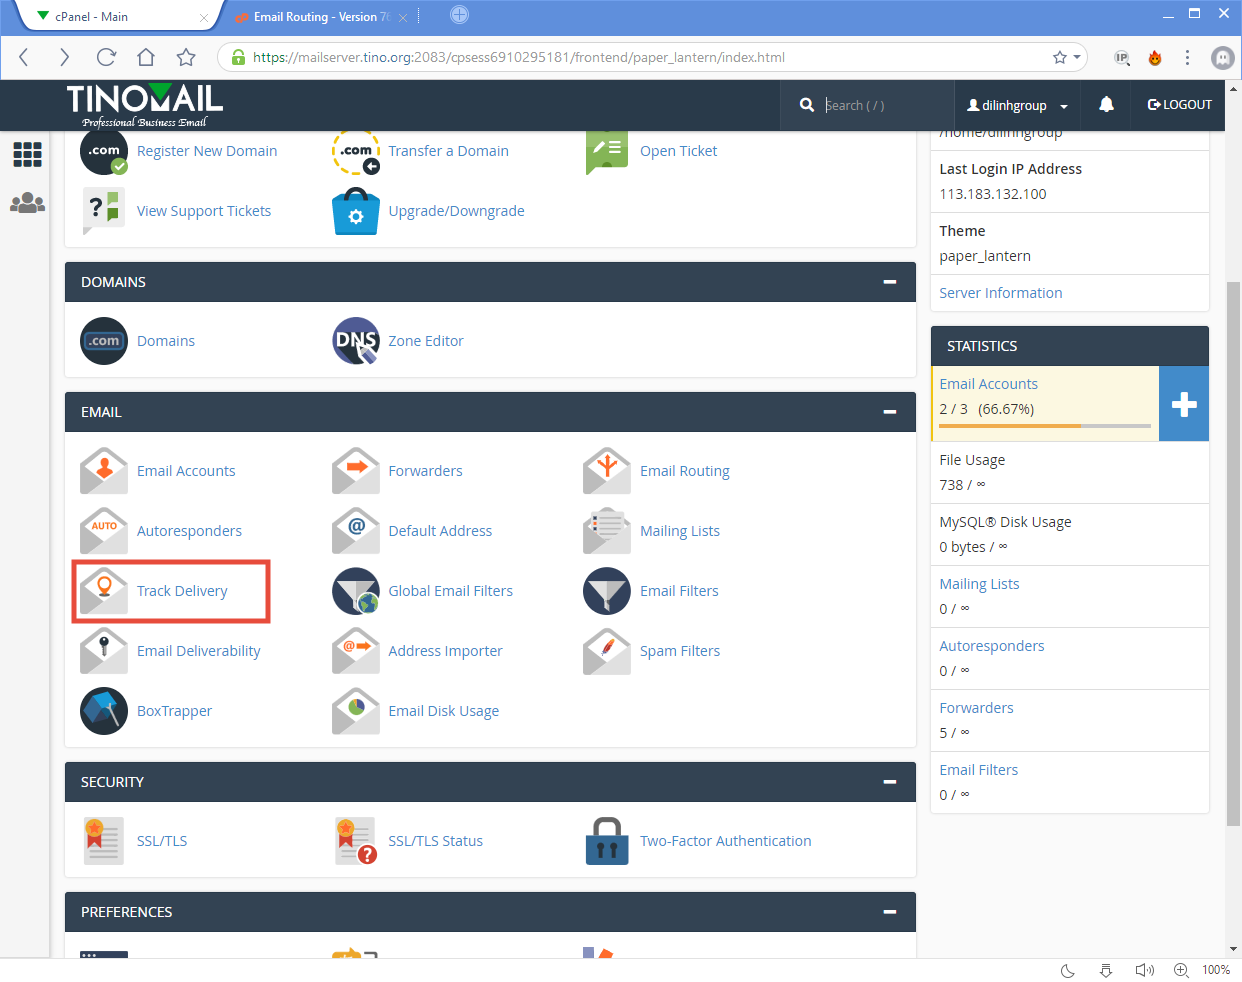 [cPanel] - Track Delivery 3